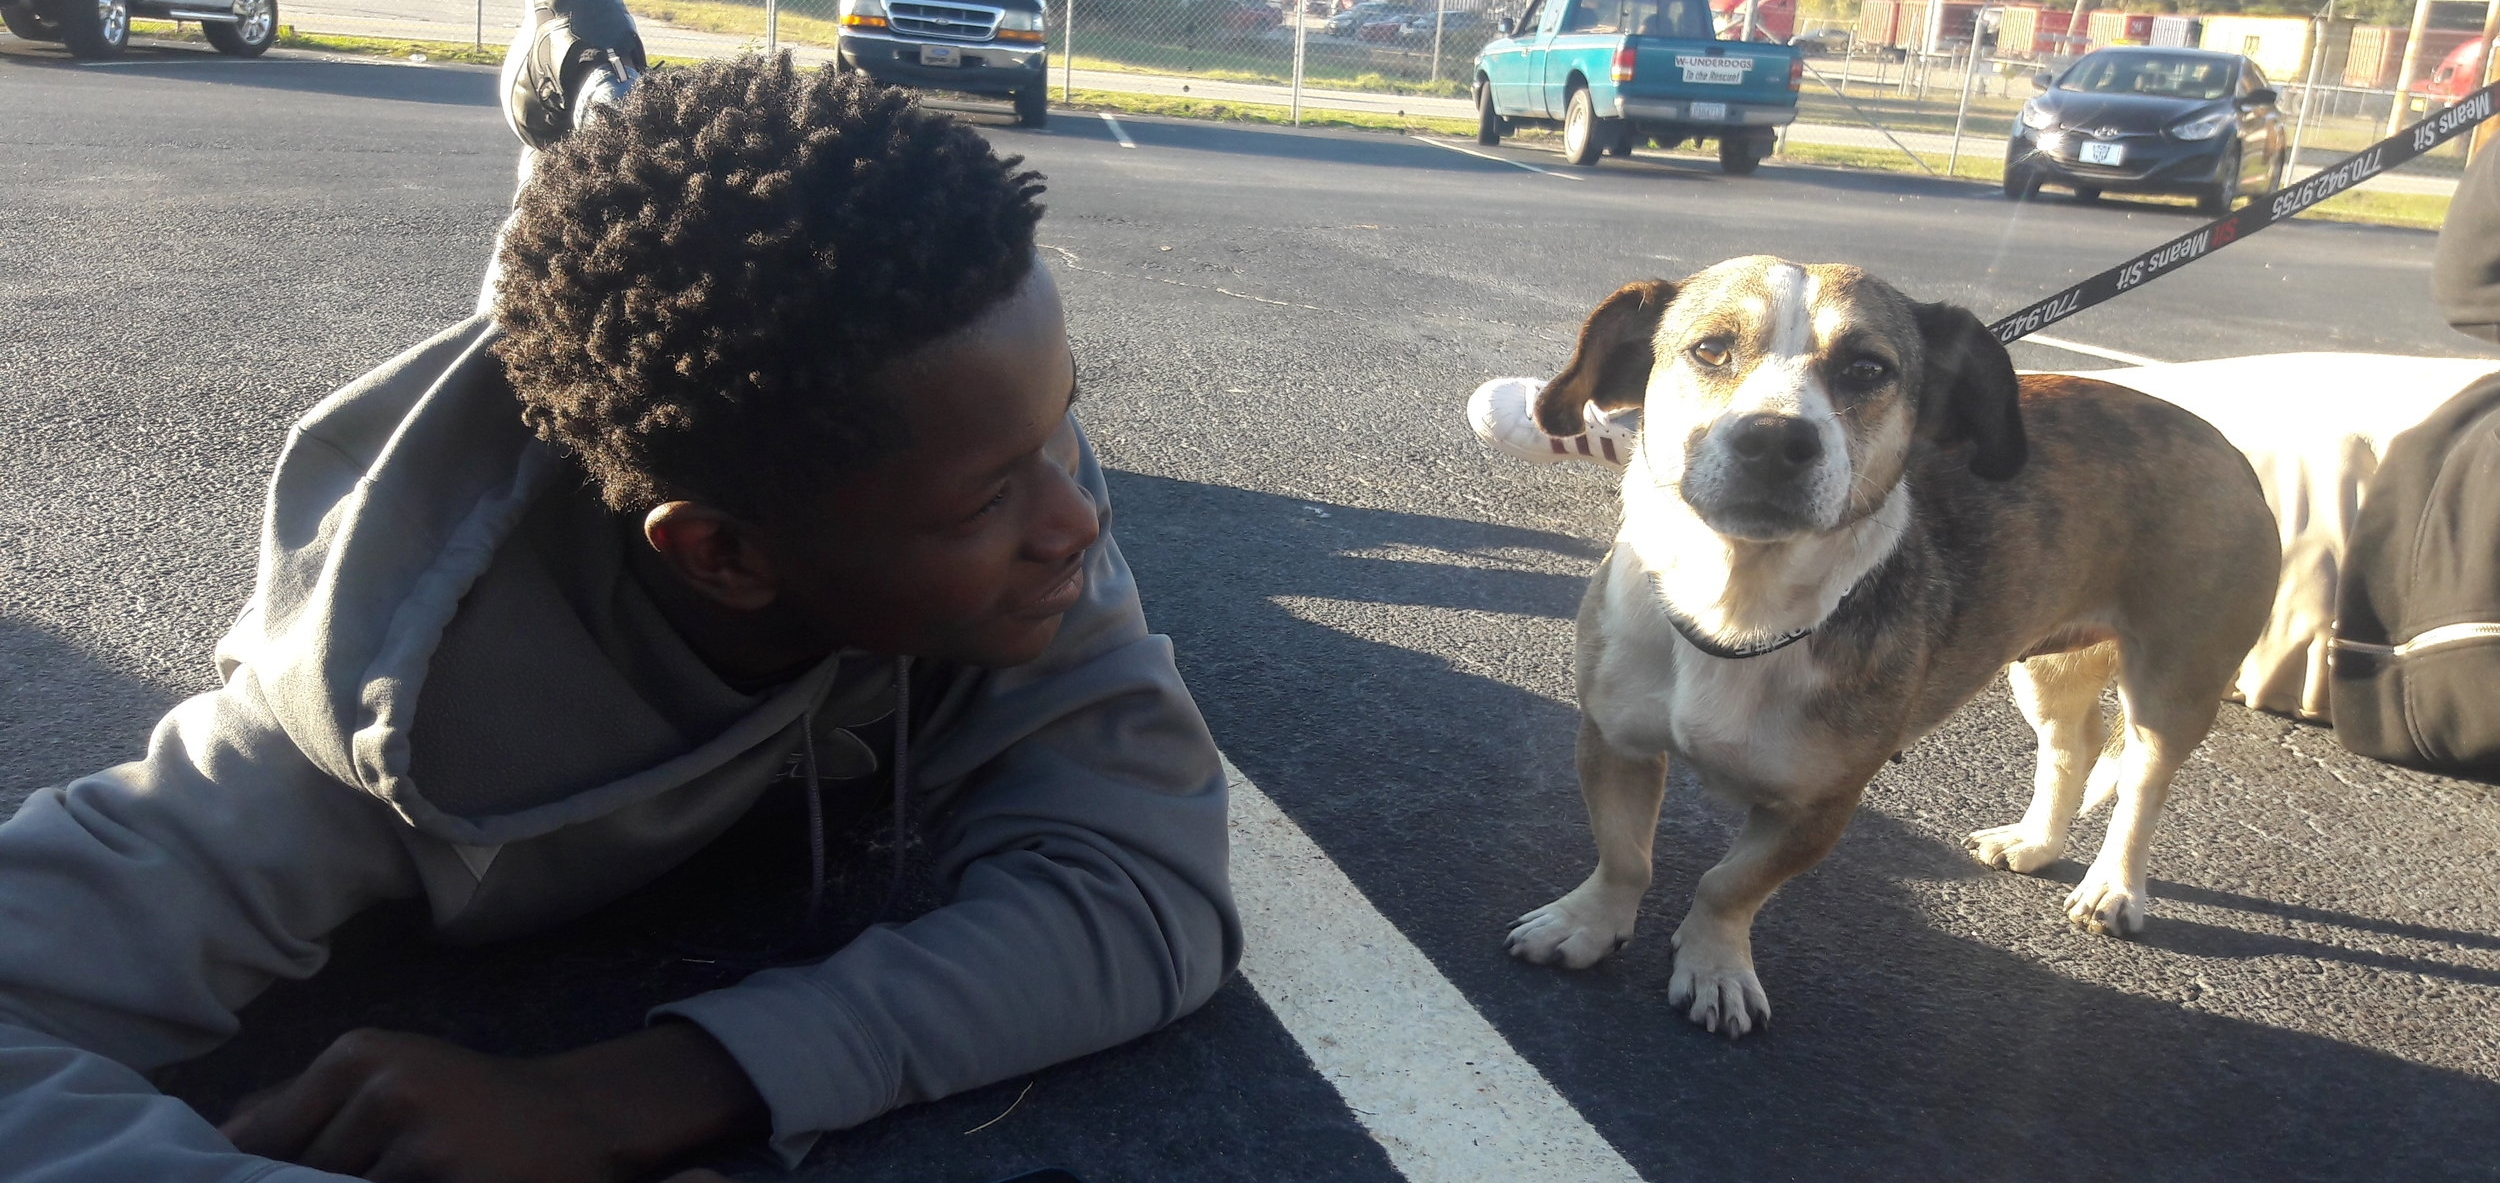 Our Mission - Lift up disadvantaged kids by helping rescue animals.